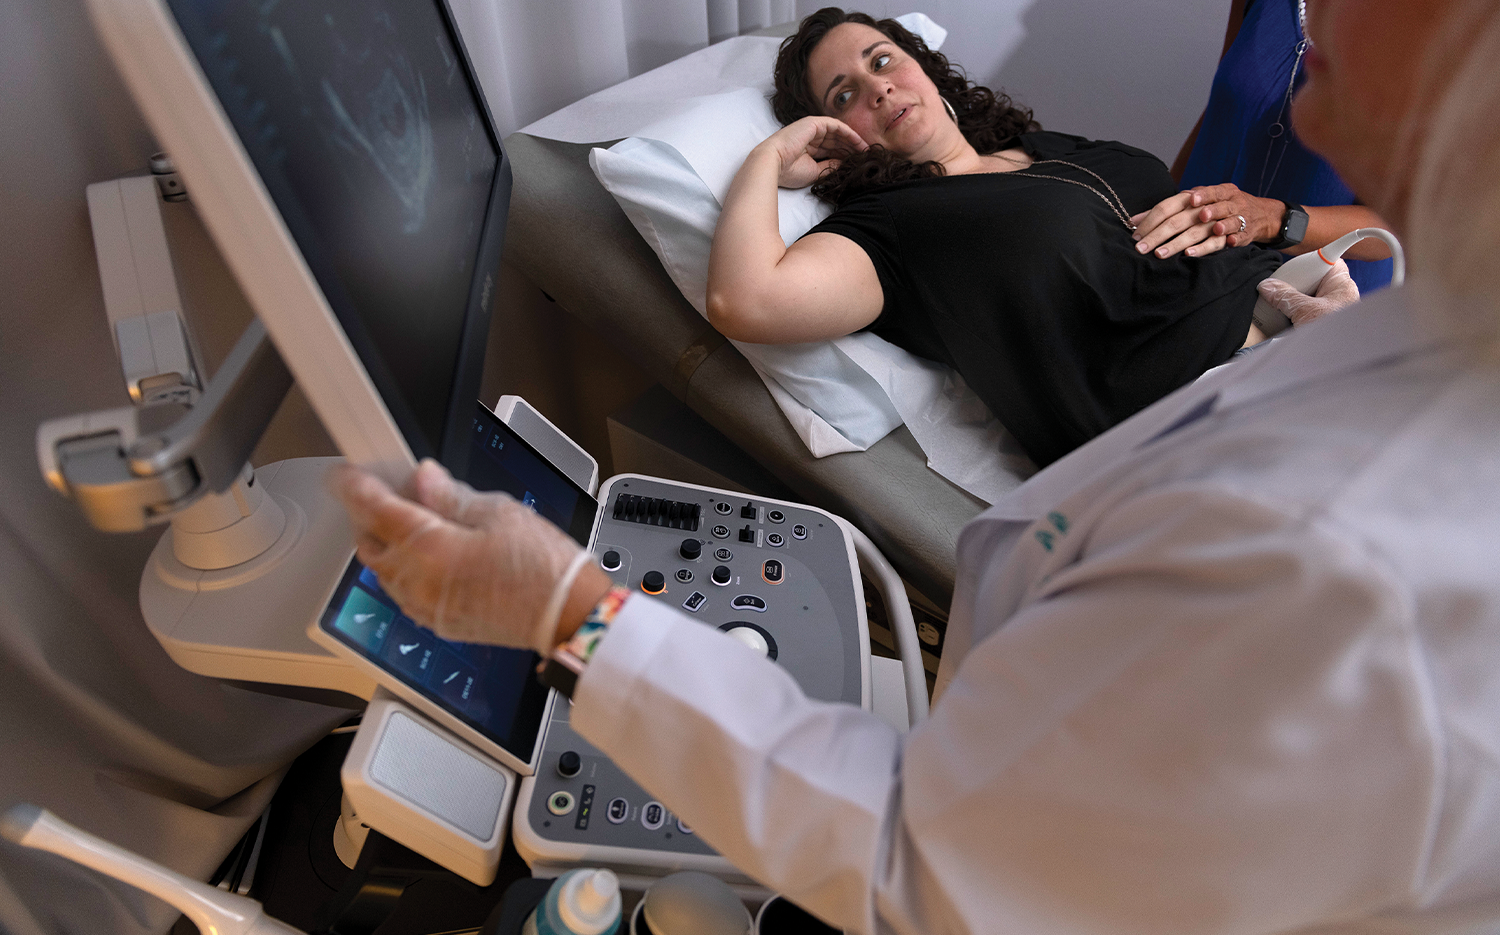 Christiansen discusses what she sees in the ultrasound.